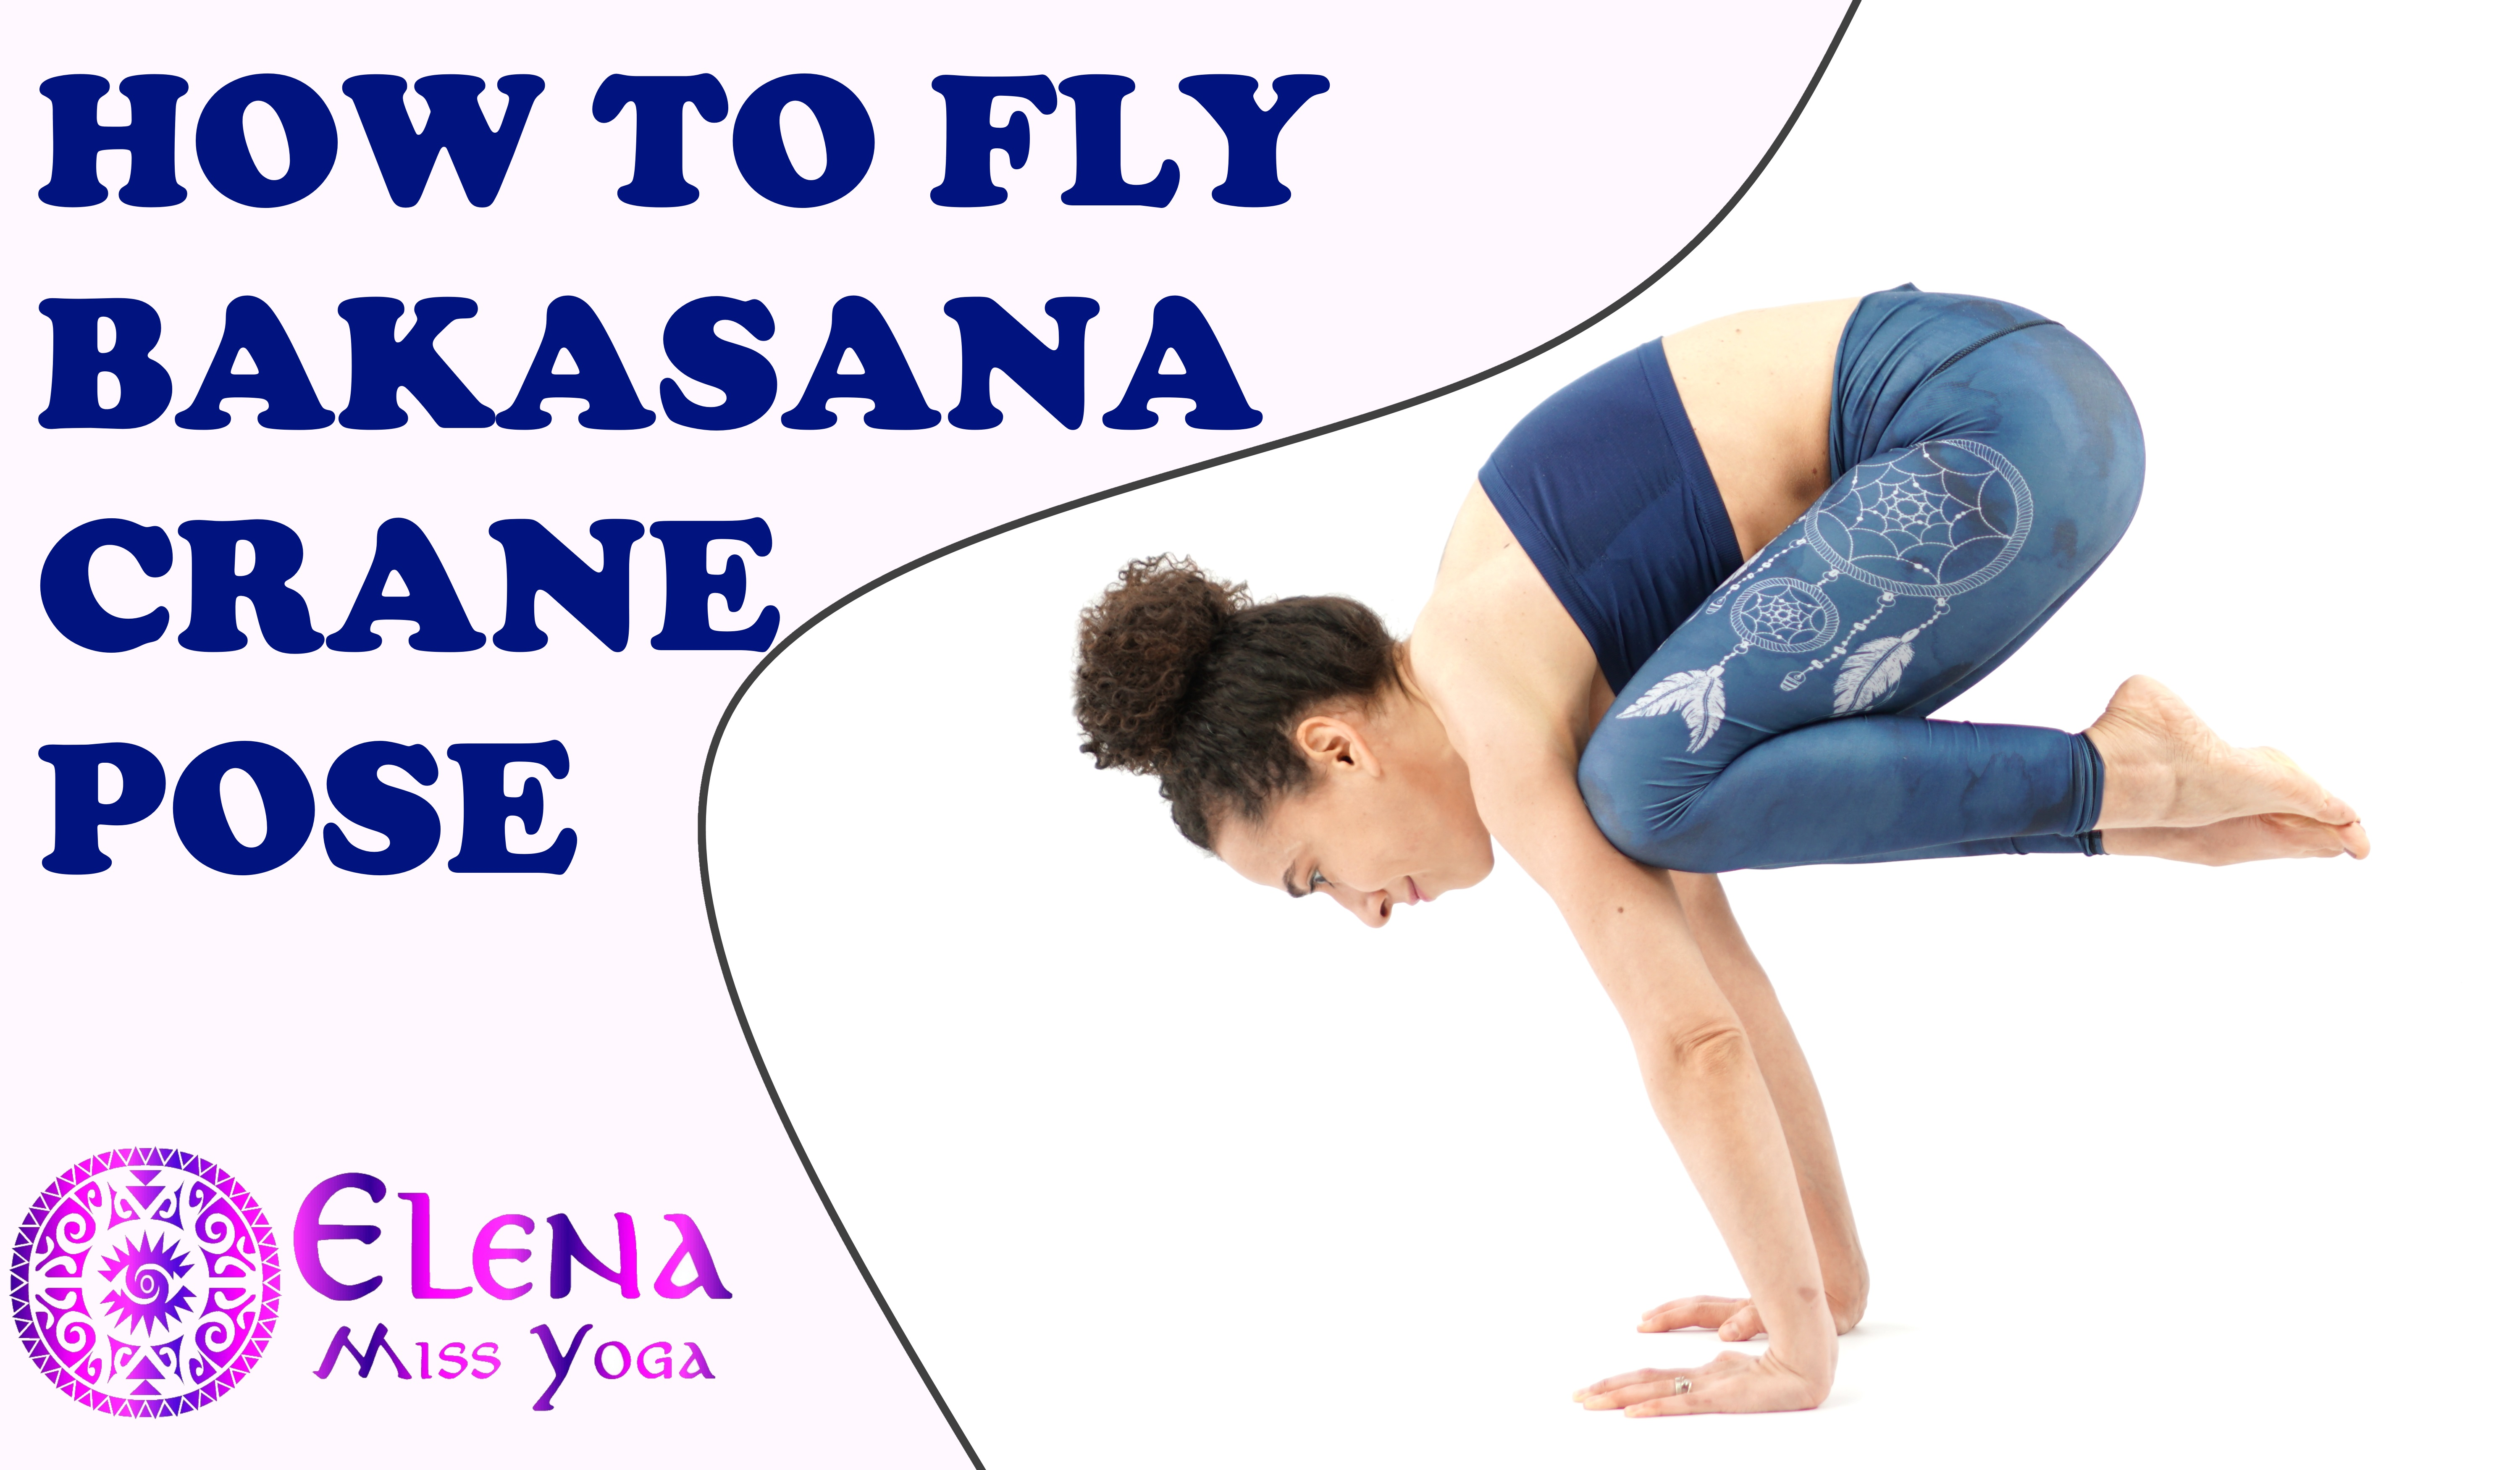 HOW TO FLY BAKASANA - TRICKS AND HACKS TO LEARN HOW TO LIFT CRANE POSE